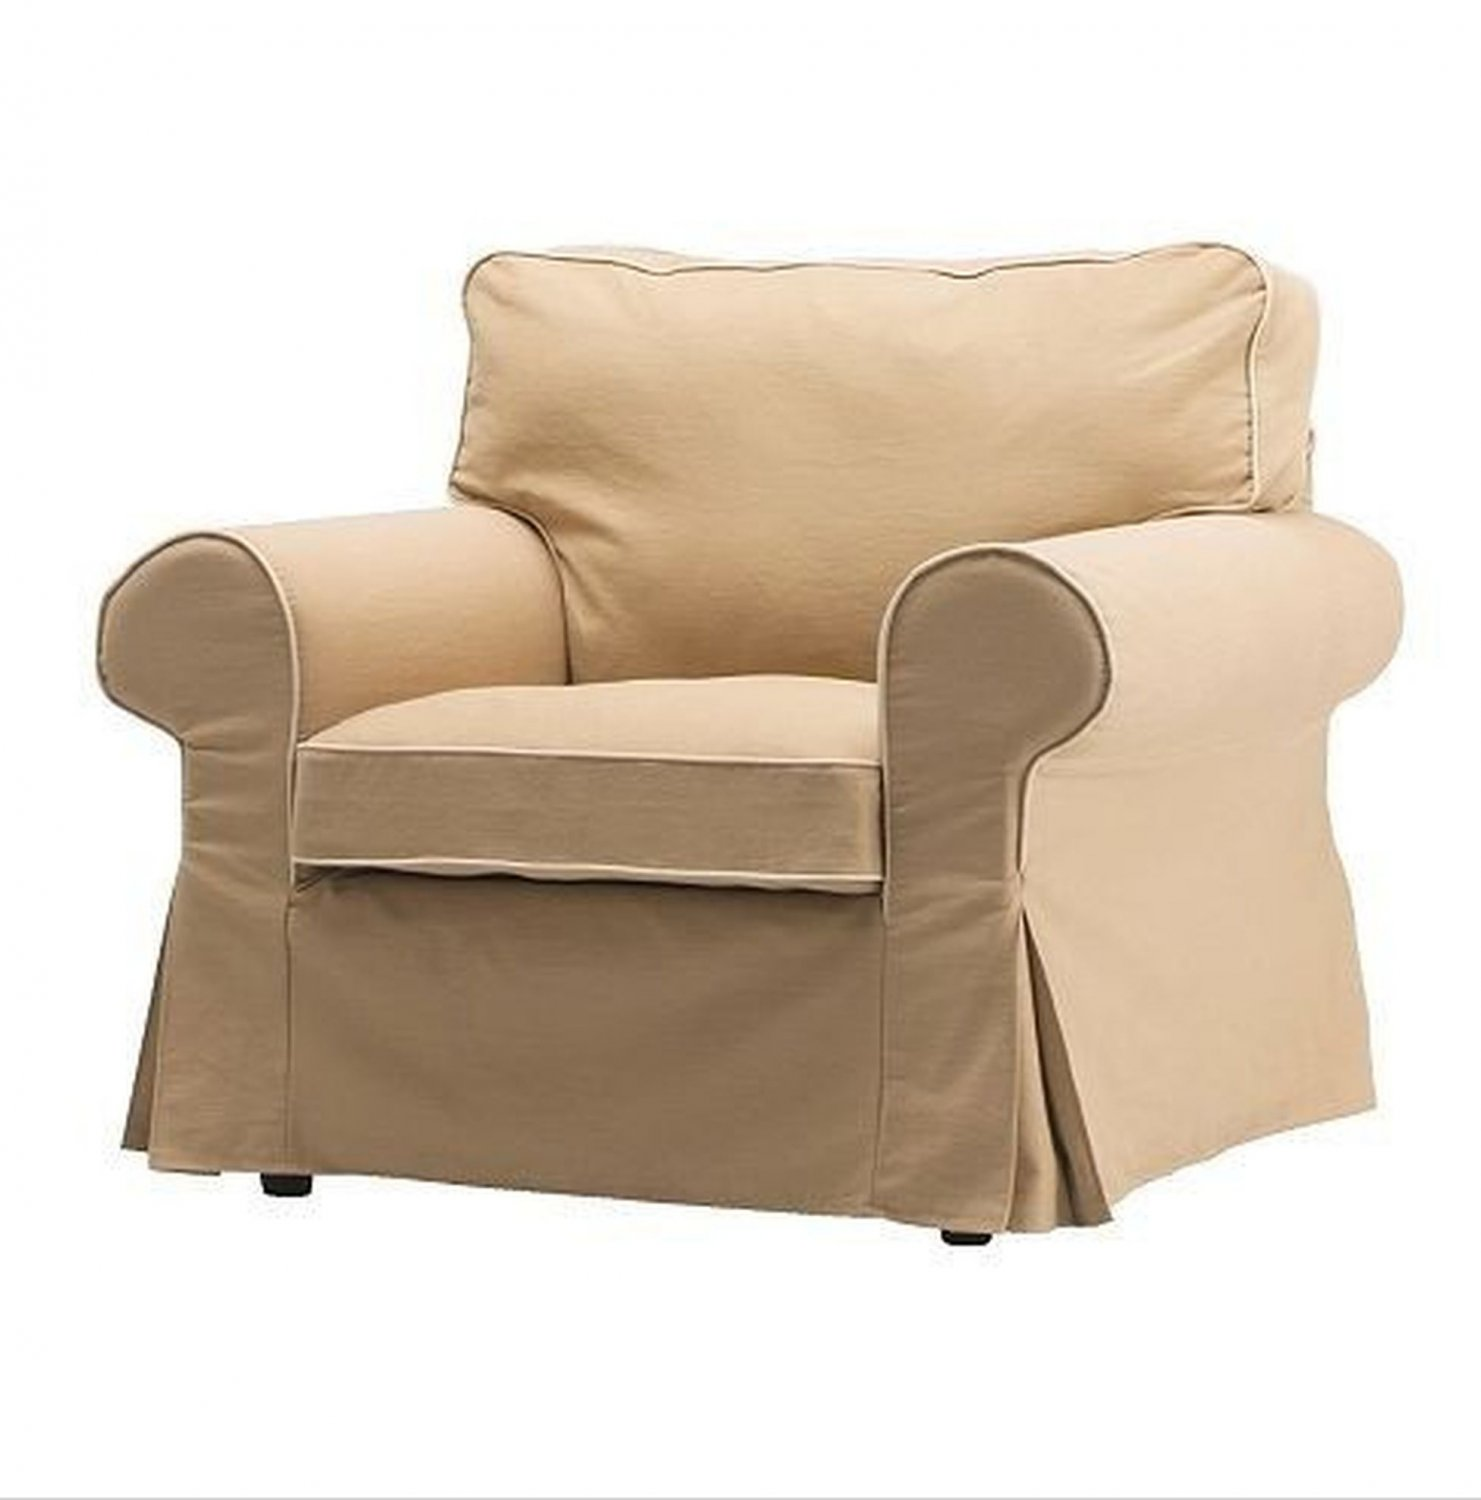 New IKEA EKTORP Armchair SLIPCOVER Cover IDEMO BEIGE w Piping